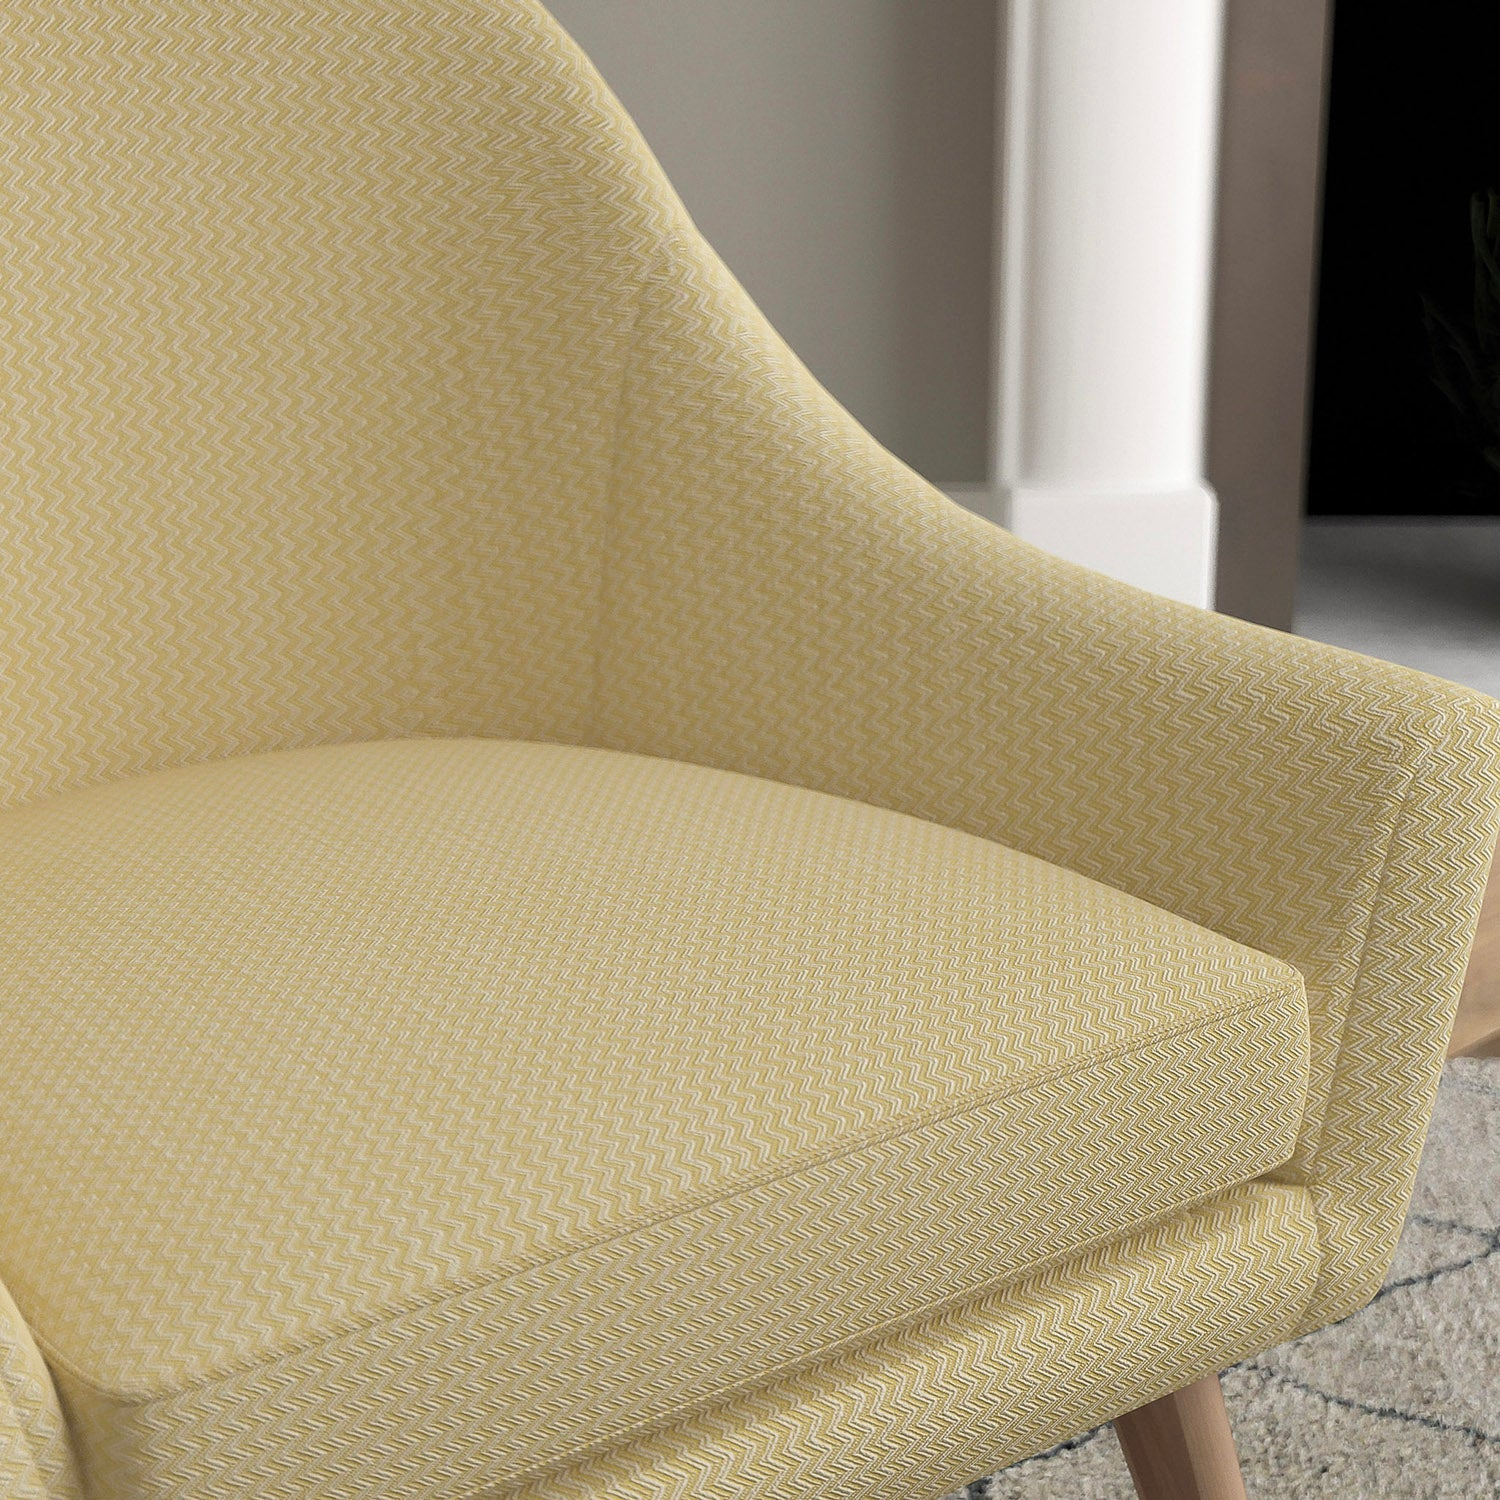 Chair with a bright yellow and neutral upholstery fabric with a chevron weave fabric